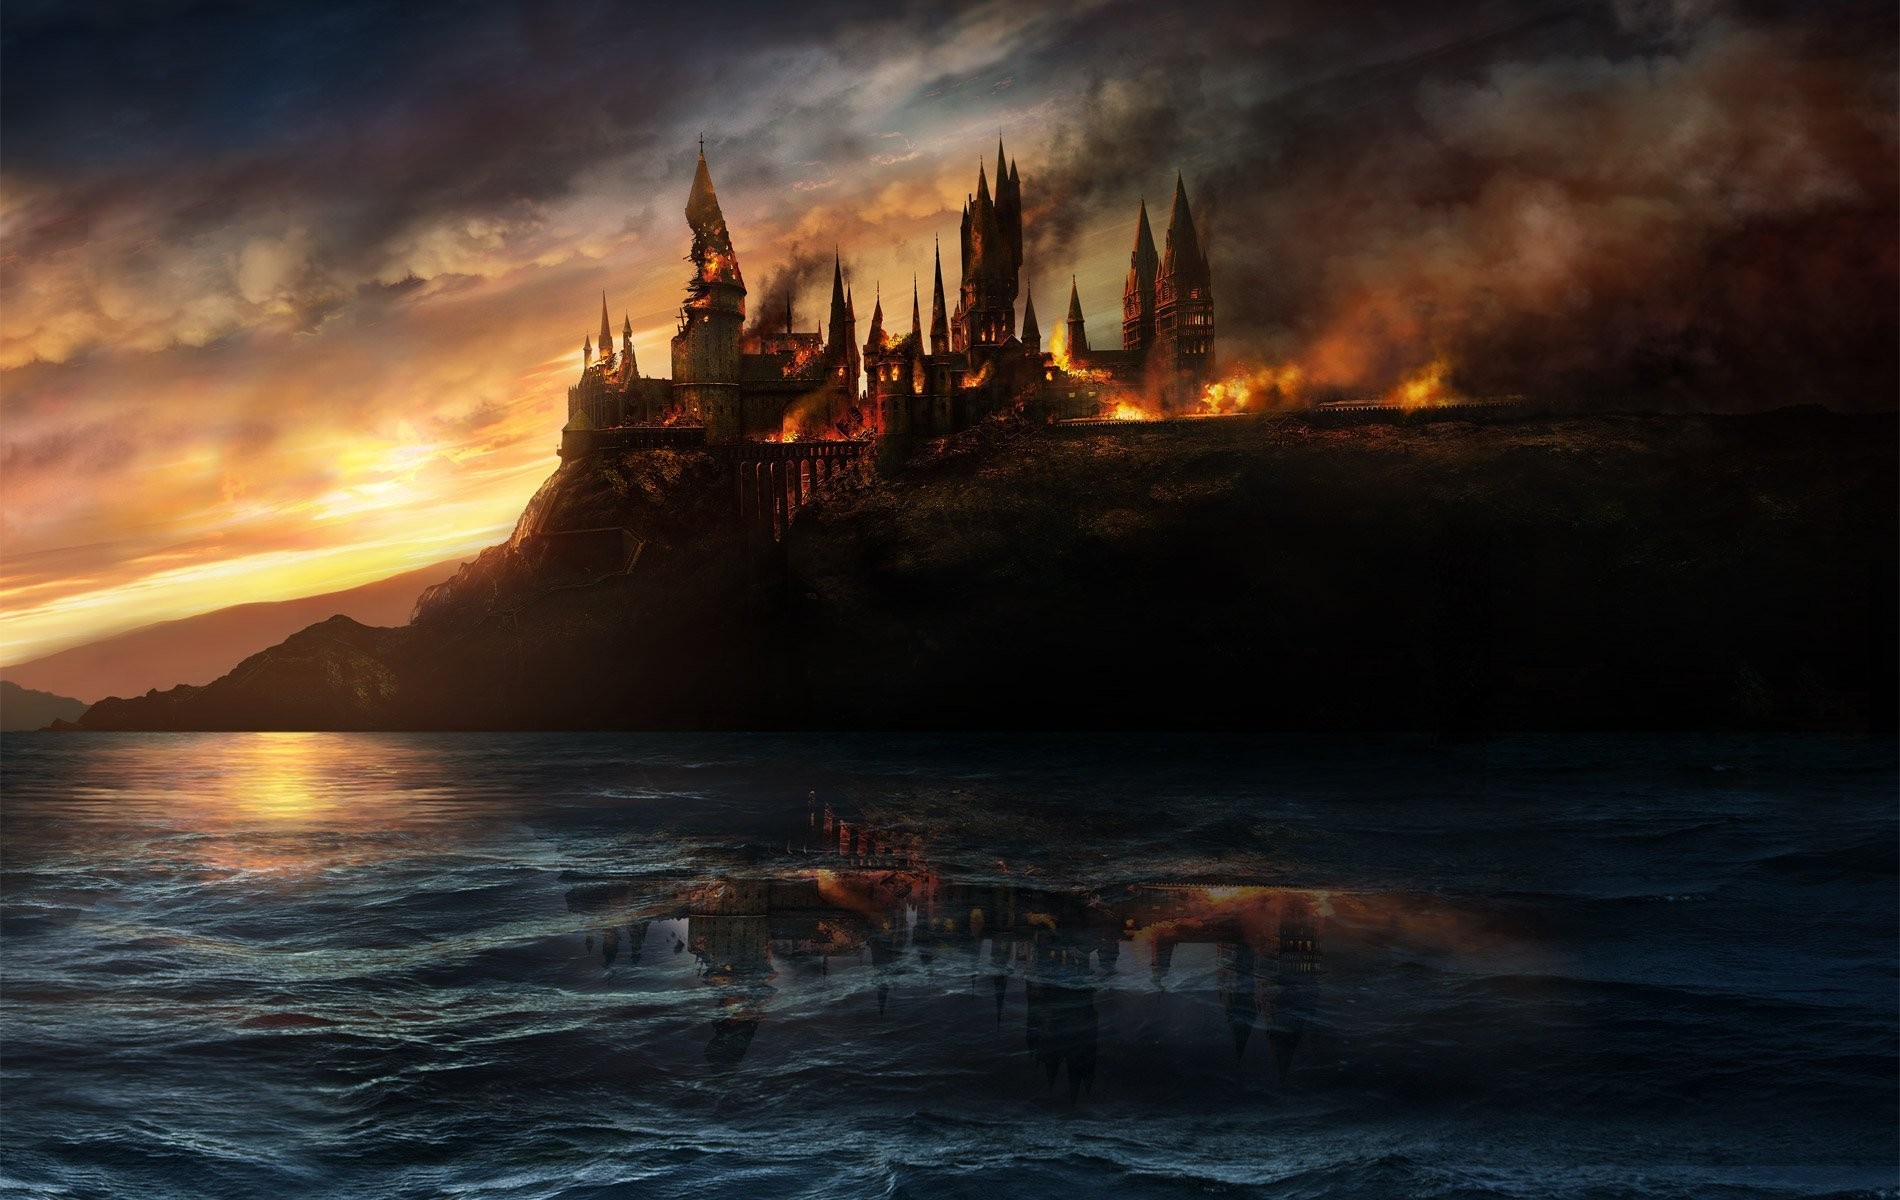 General 1900x1200 Hogwarts destruction fire castle fantasy art sea clouds reflection Harry Potter and the Deathly Hallows movies Harry Potter